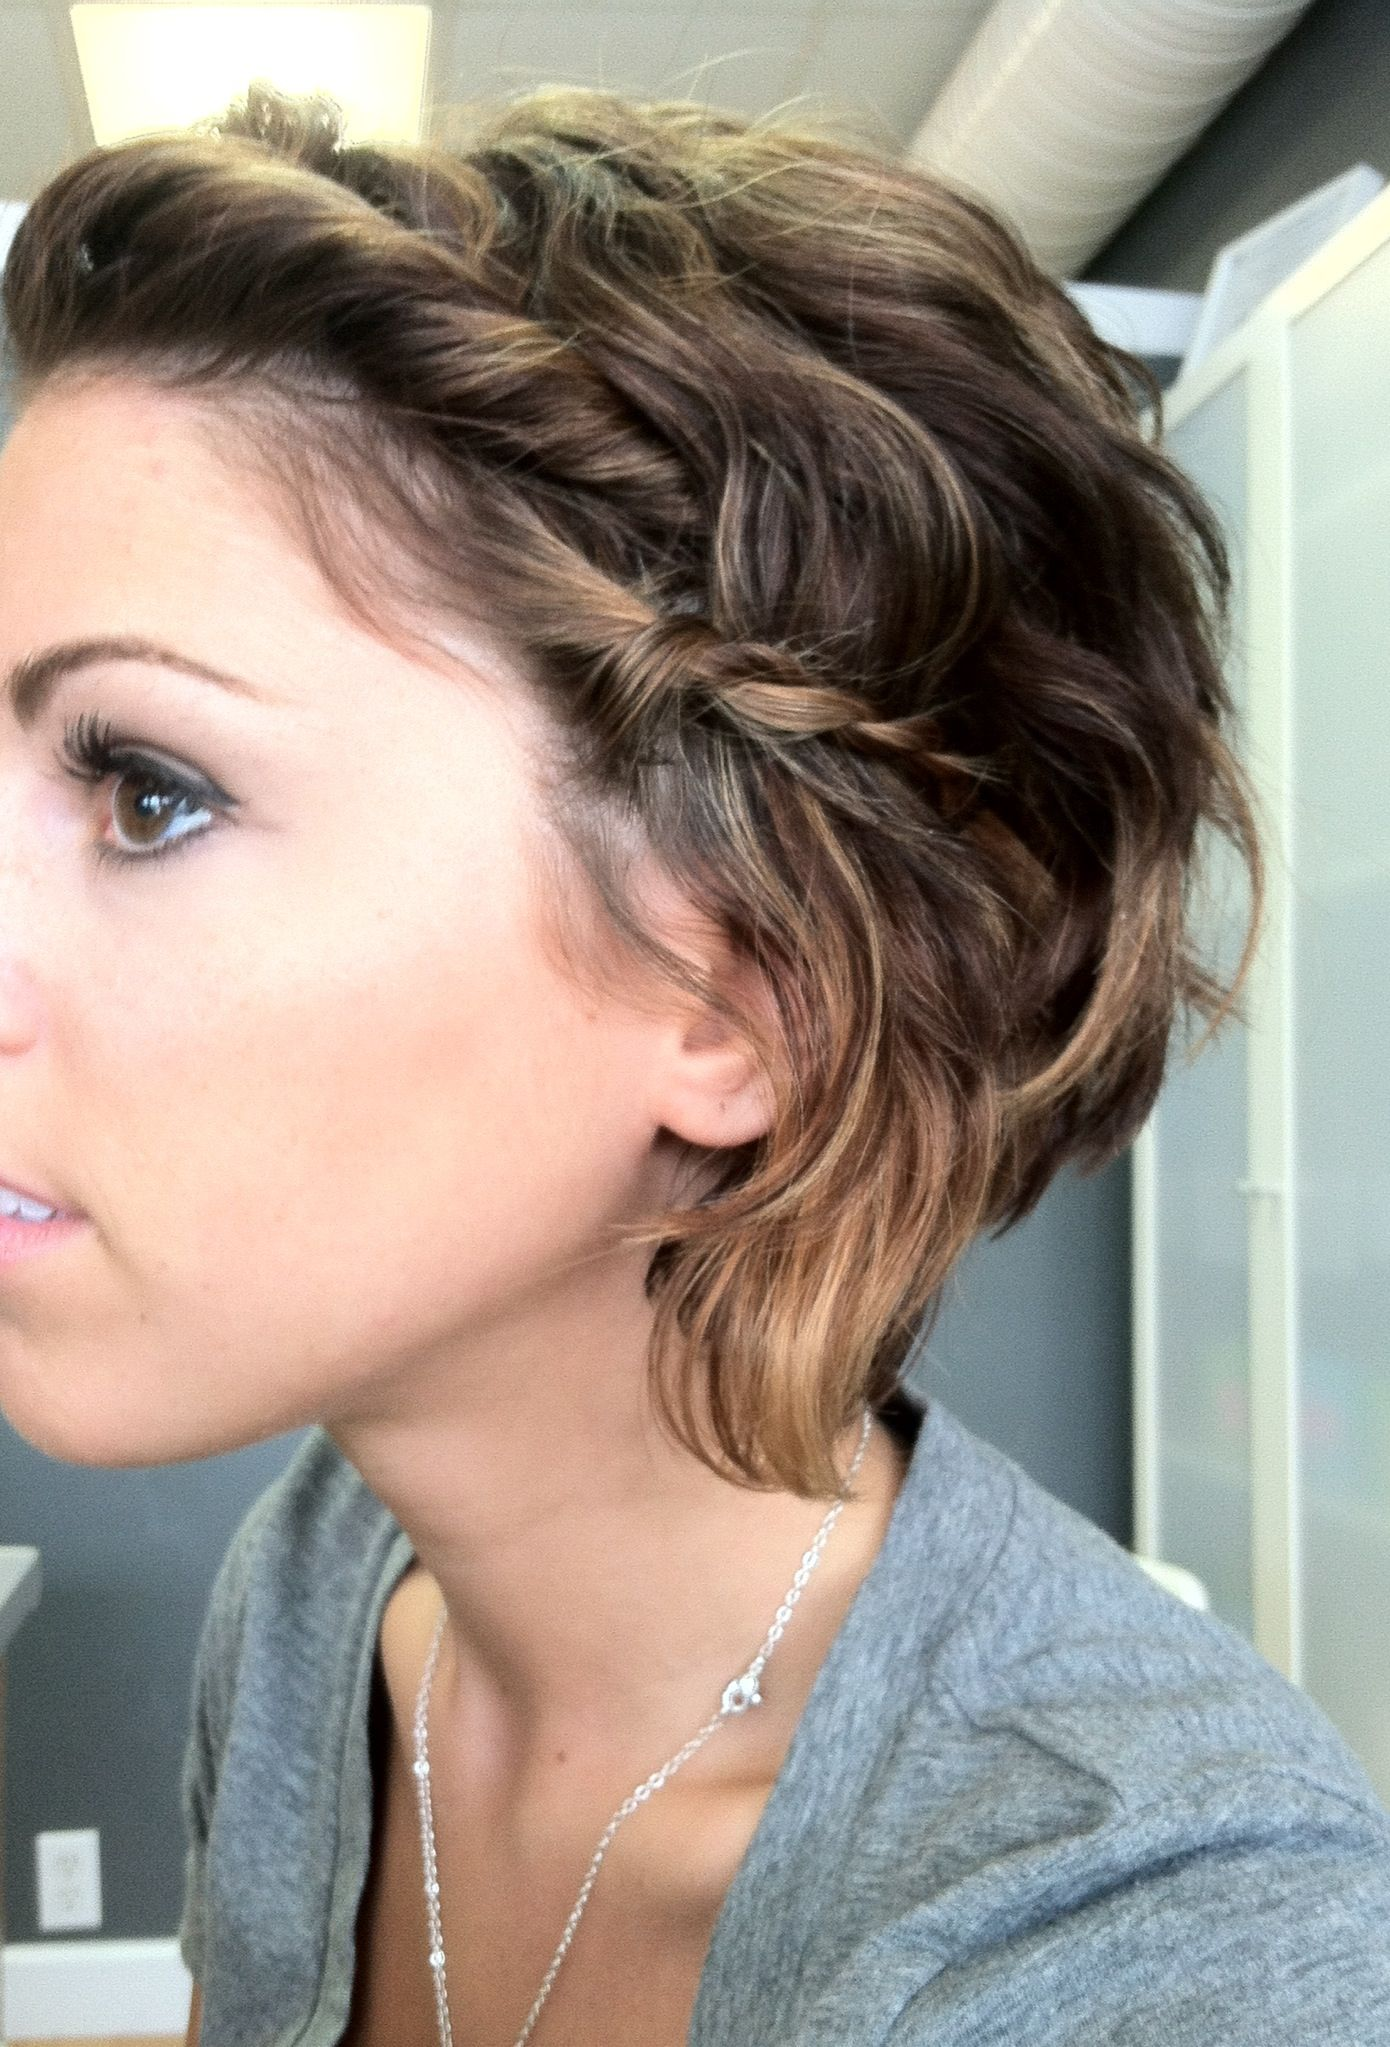 Graduated Bob Hairstyles Cute Short Hairstyle Ideas Short Hairstyles 2016 2017 Most